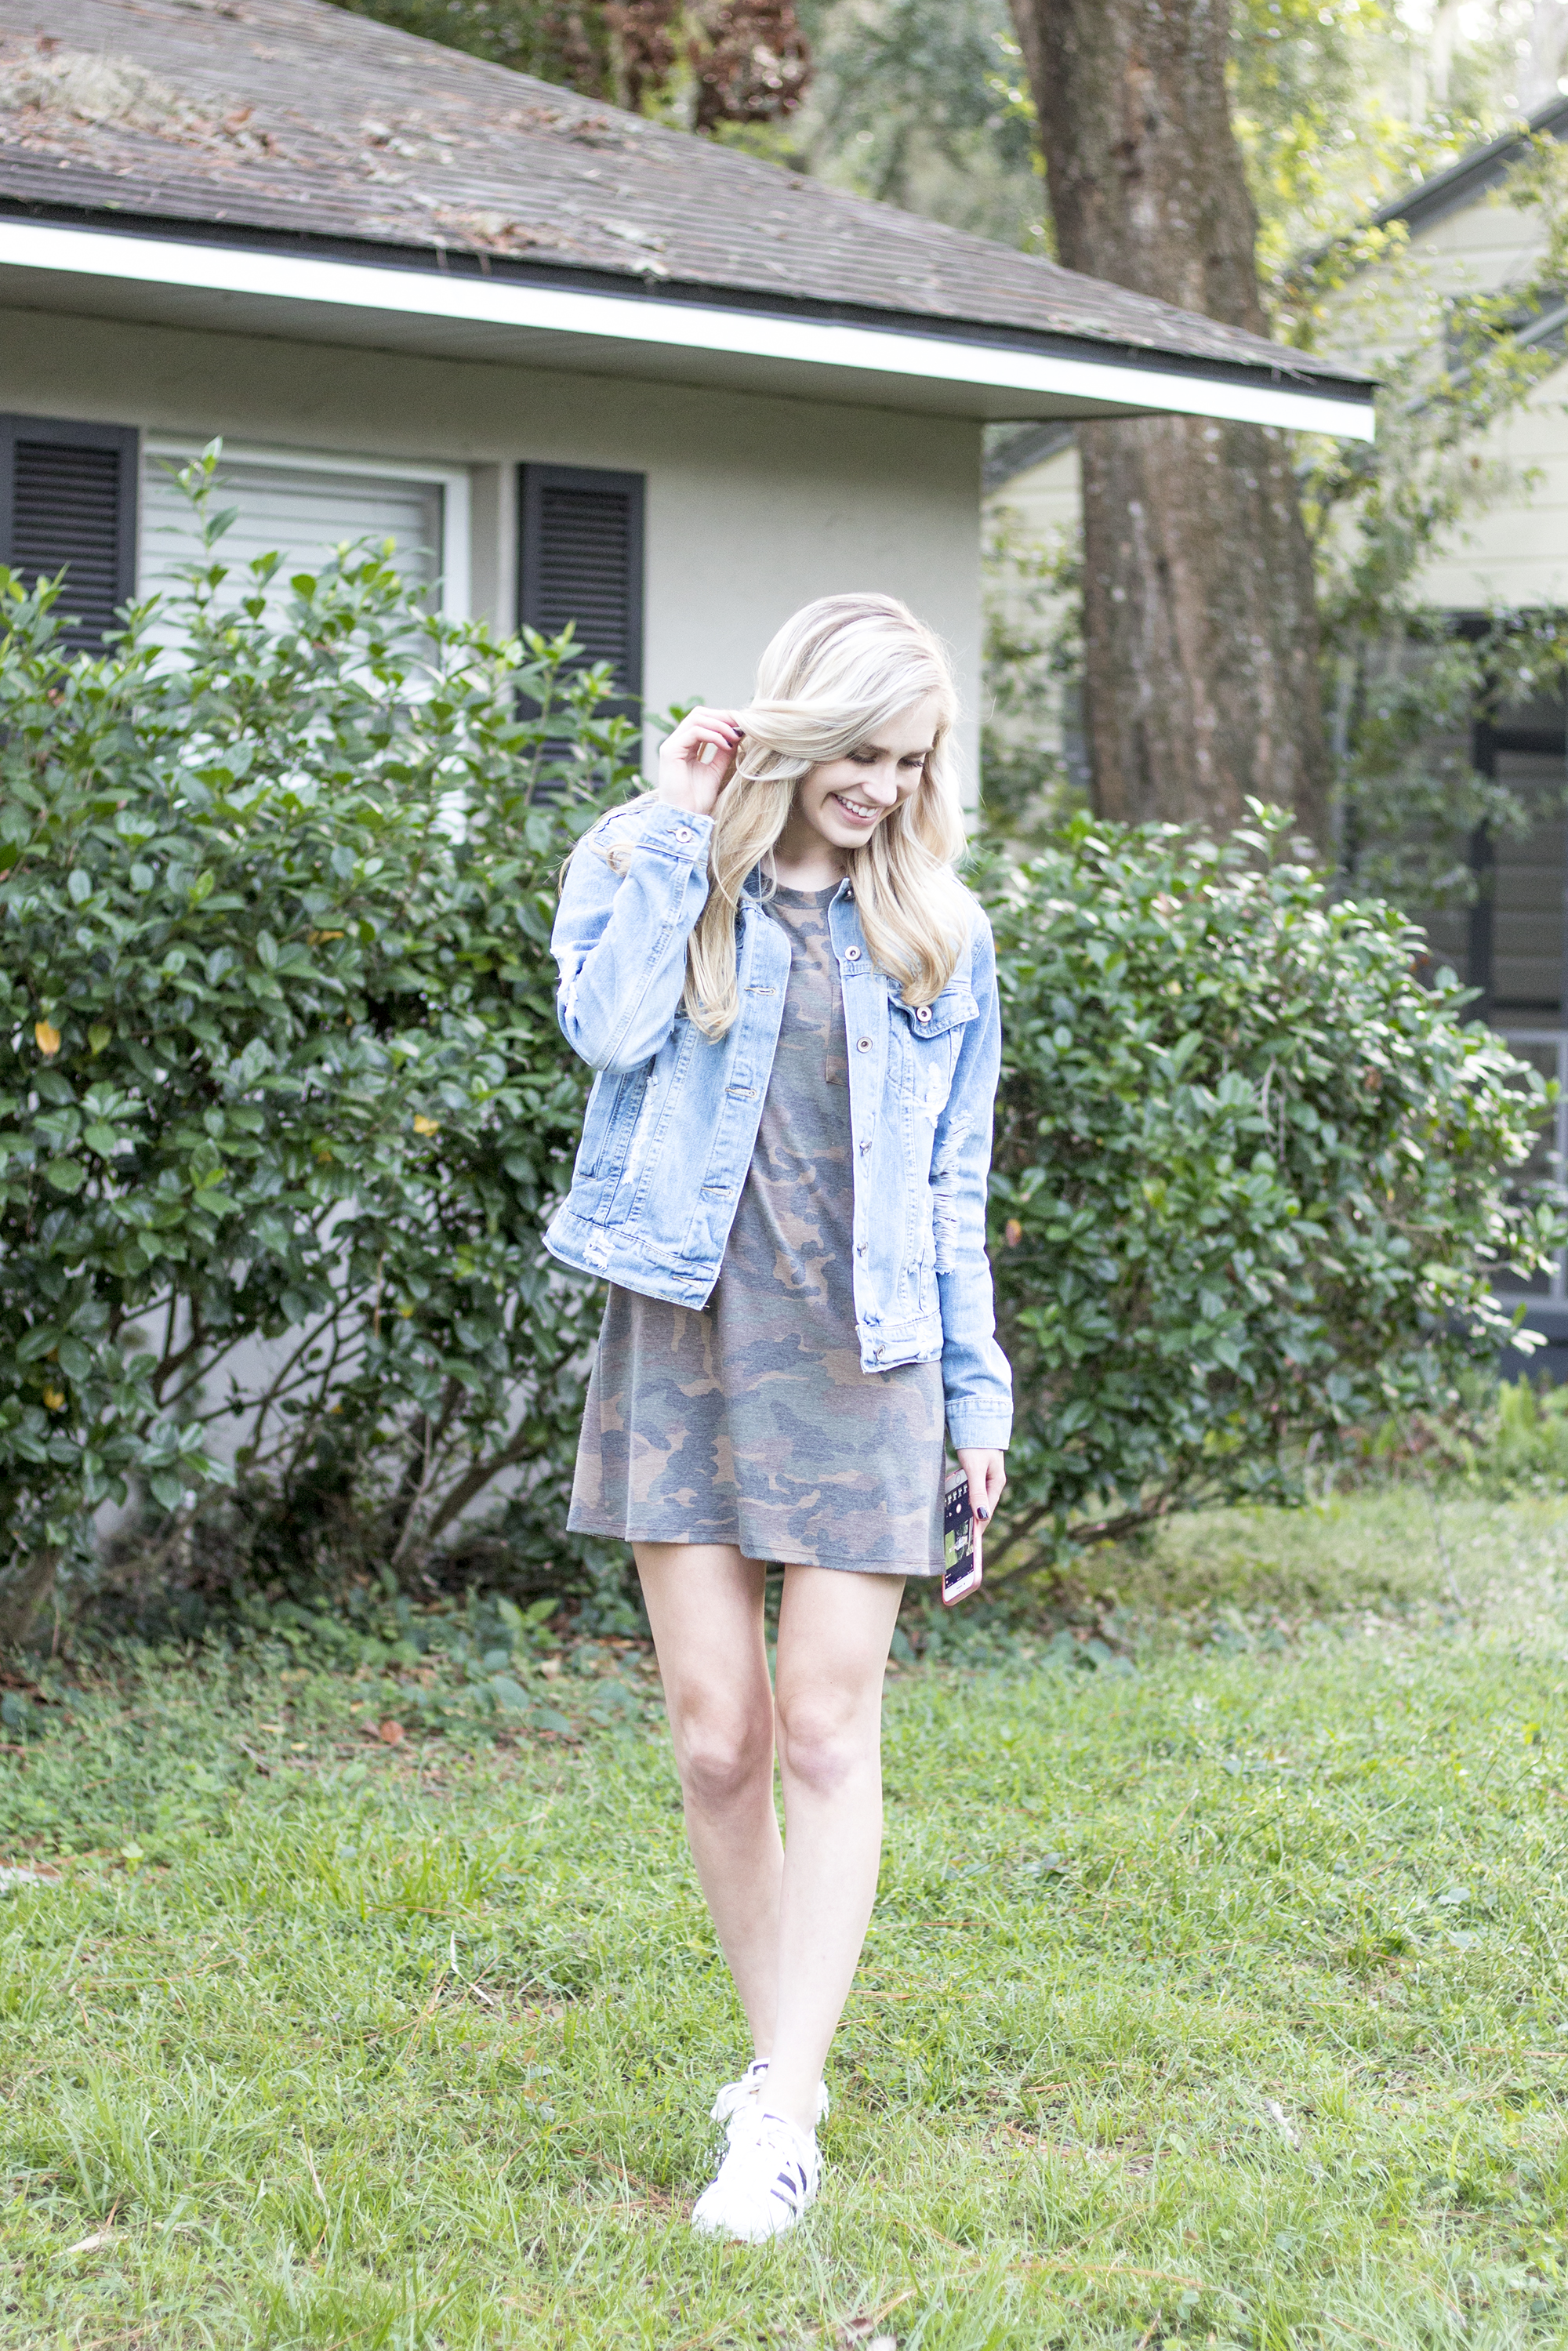 styelled-blog-fashion-style-beauty-lifestyle-blogger-camo-shirt-dress-denim-distressed-jacket-blonde-fall-trends-04